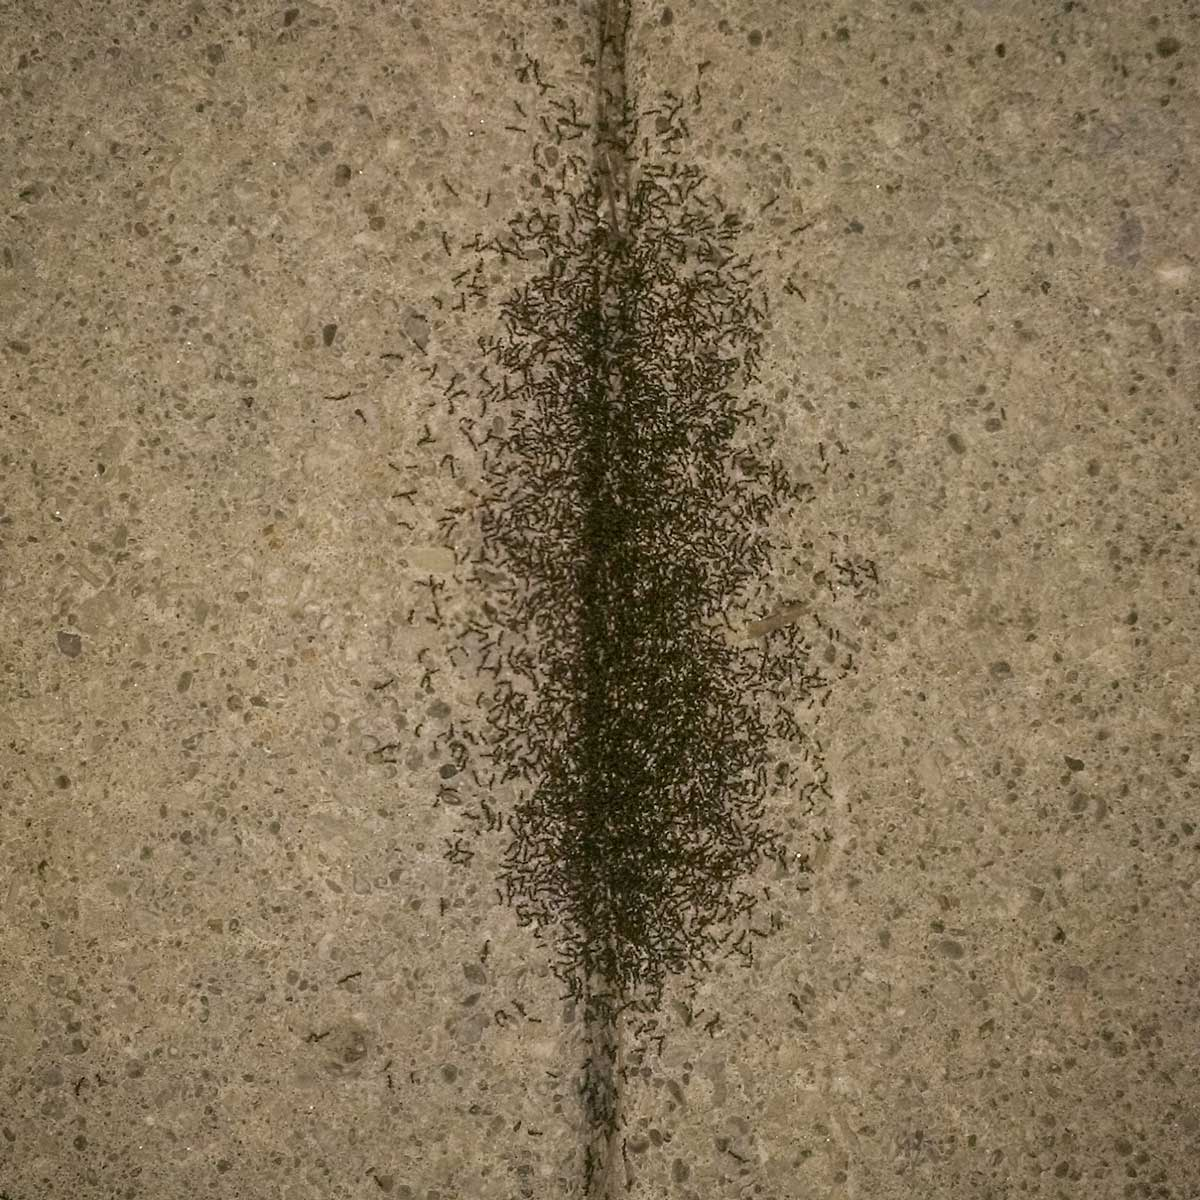 Pavement Ants in Walkway Crack